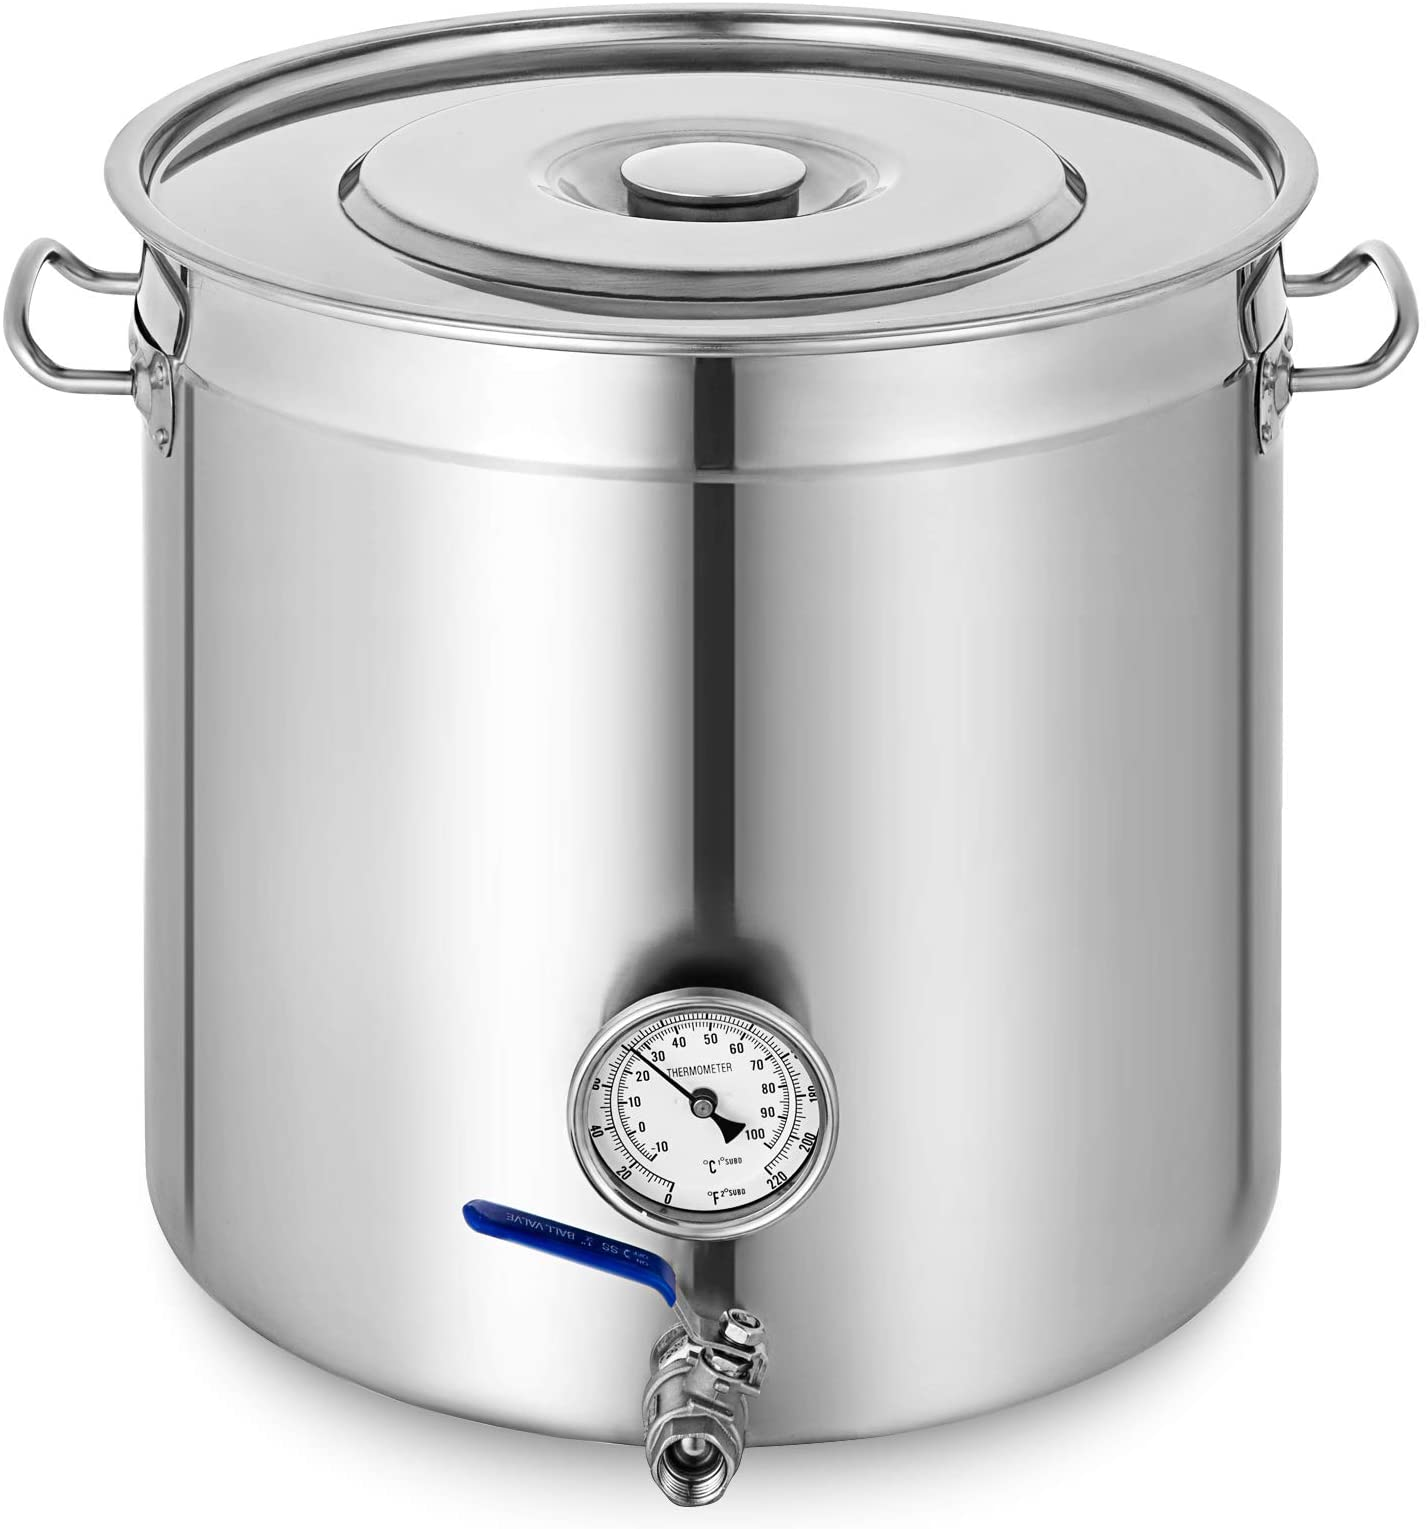 Mophorn Kettle Stockpot Stainless Steel 12.5 Gal with Lid and Thermometer for Home Brew and Stock Pot Cookware 50 Quart